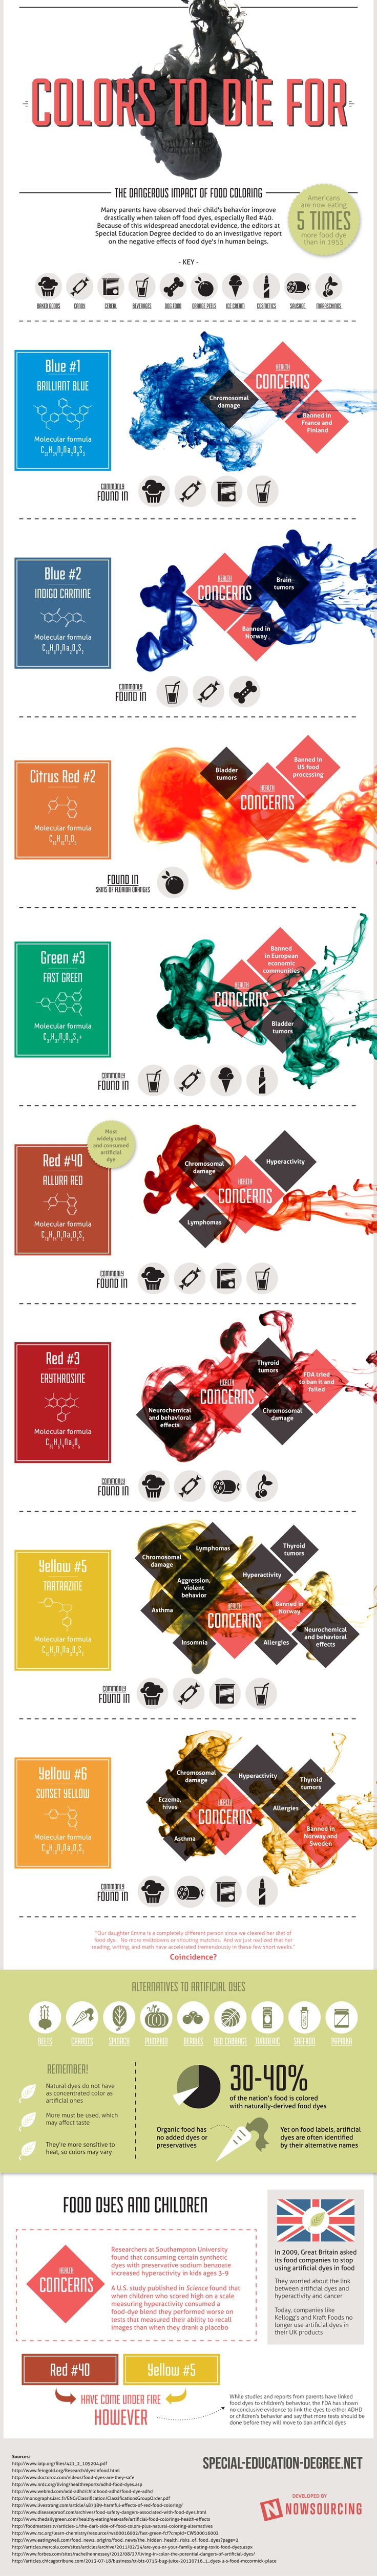 Infographic: Just How Dangerous Is The Dye In Your Food? | Co.Design | business + innovation + design